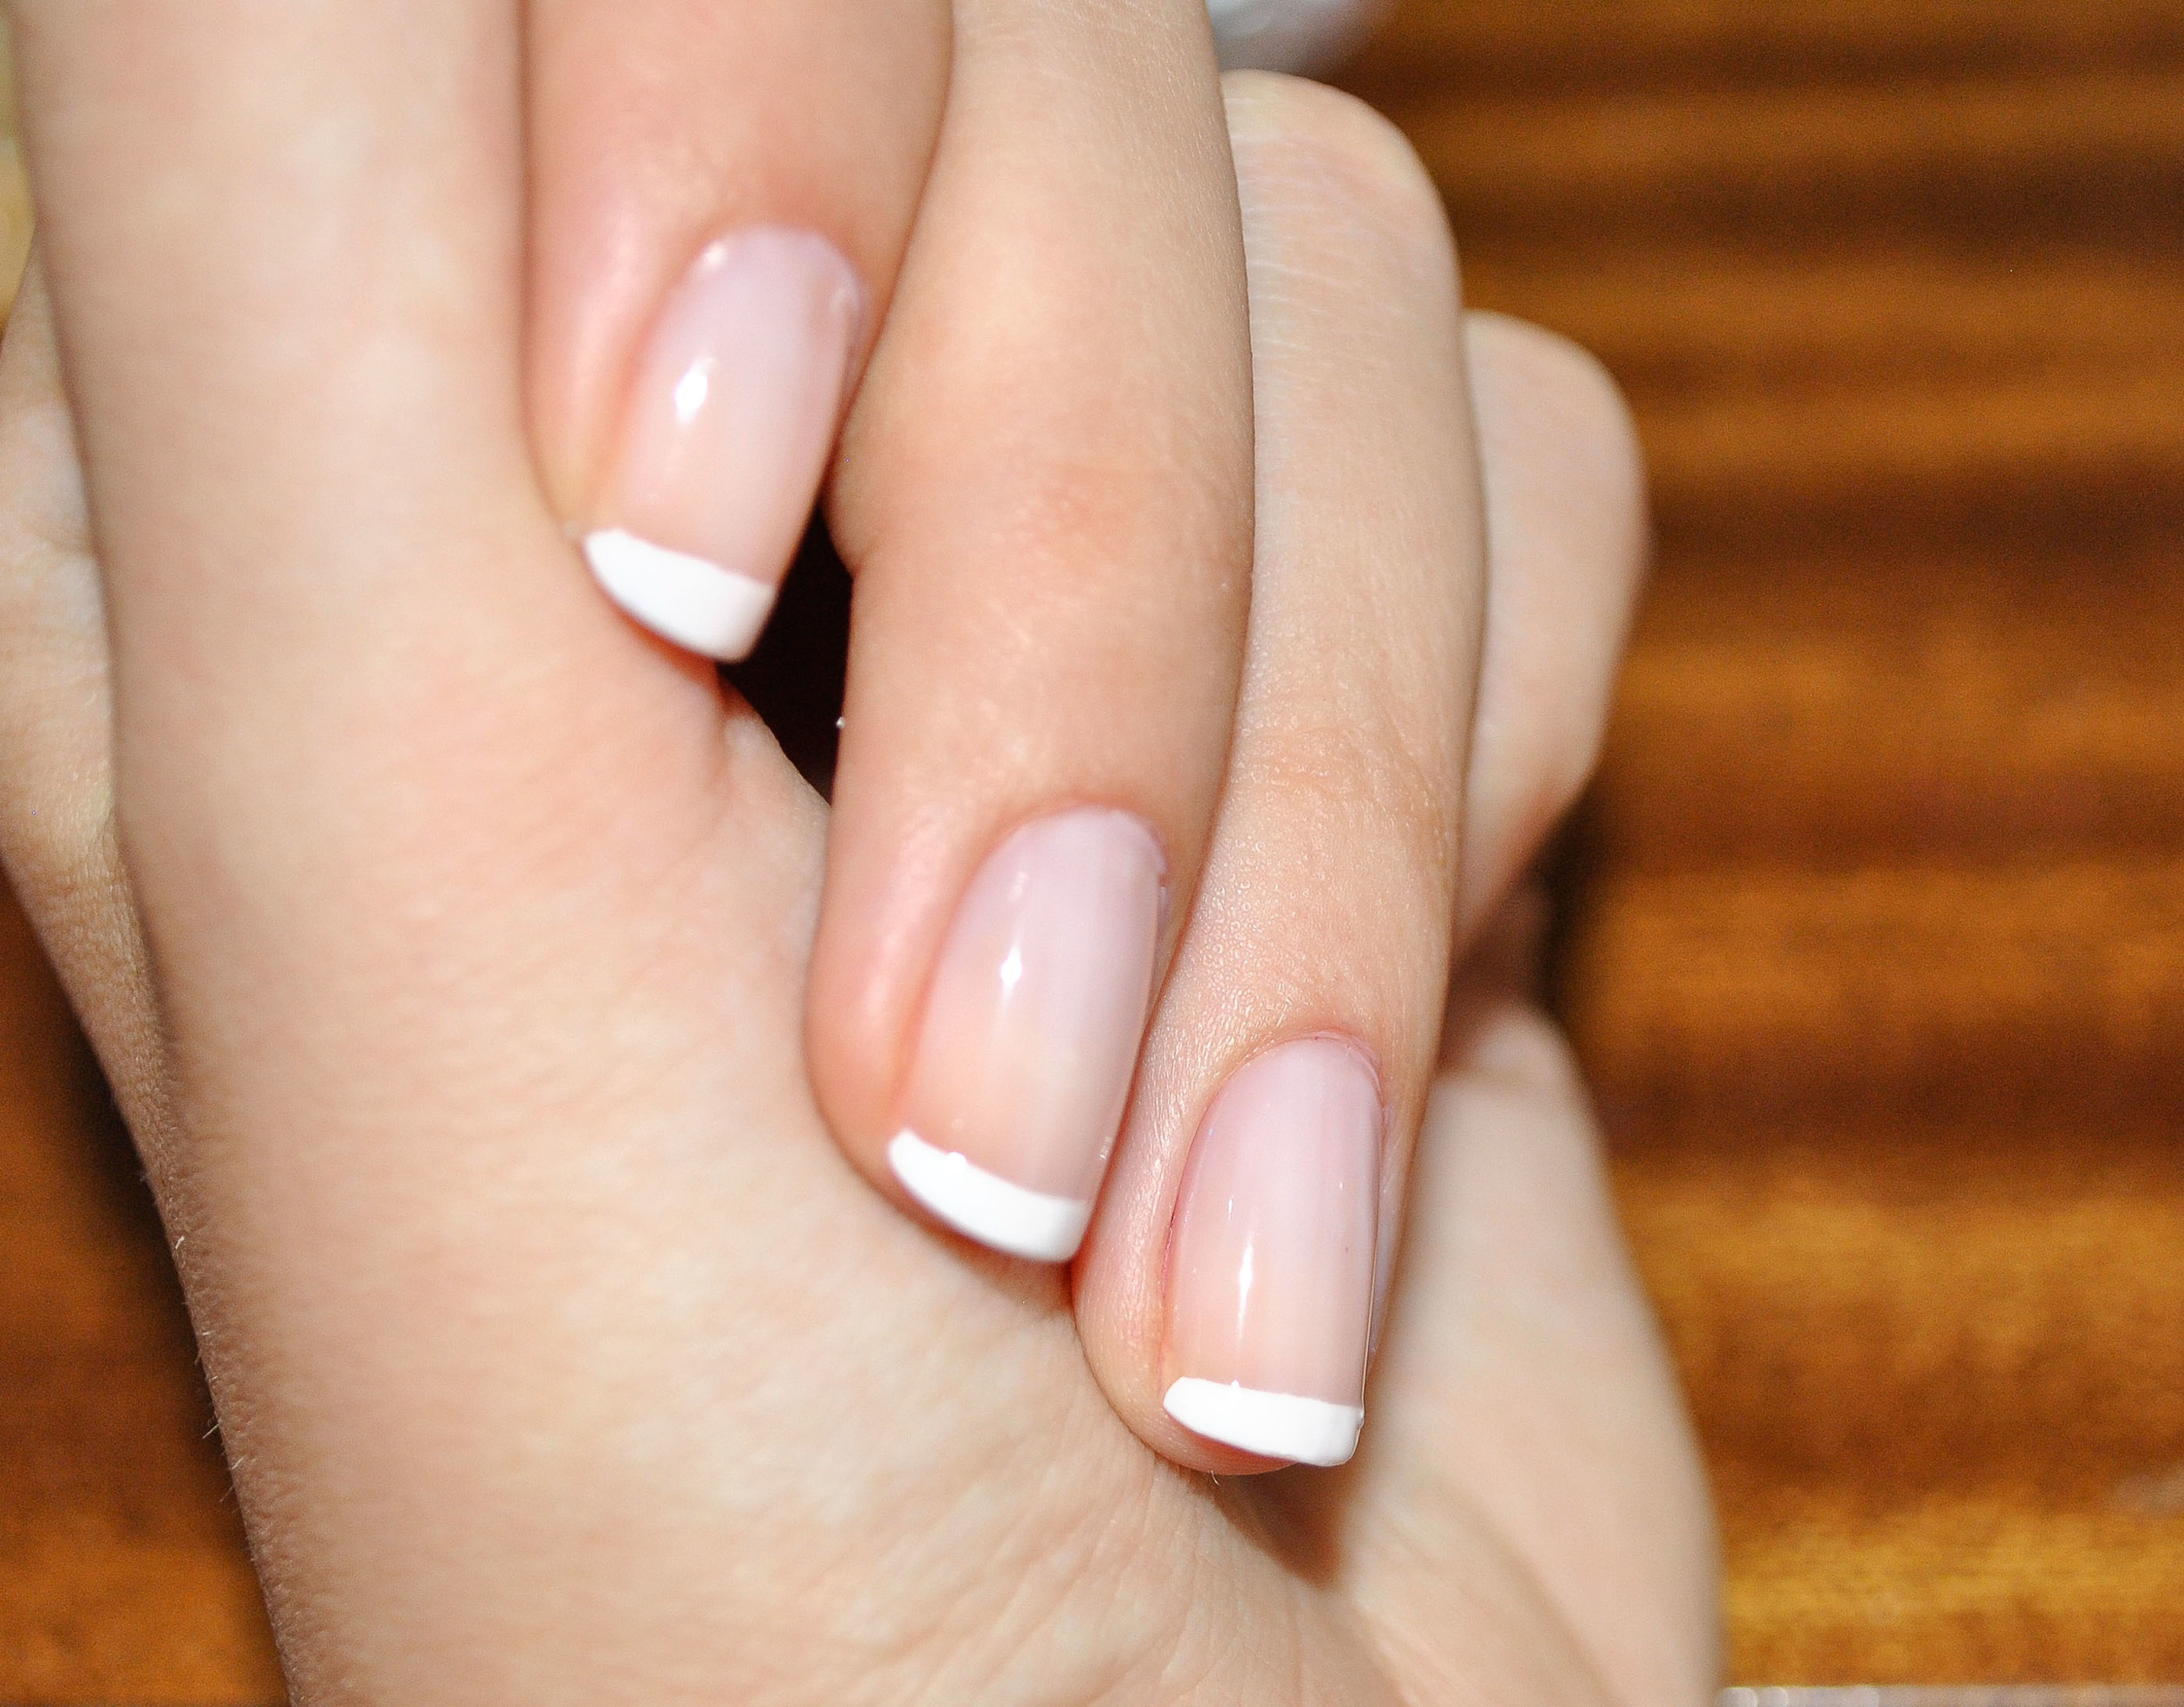 FRENCH MANICURE on own nails.jpg